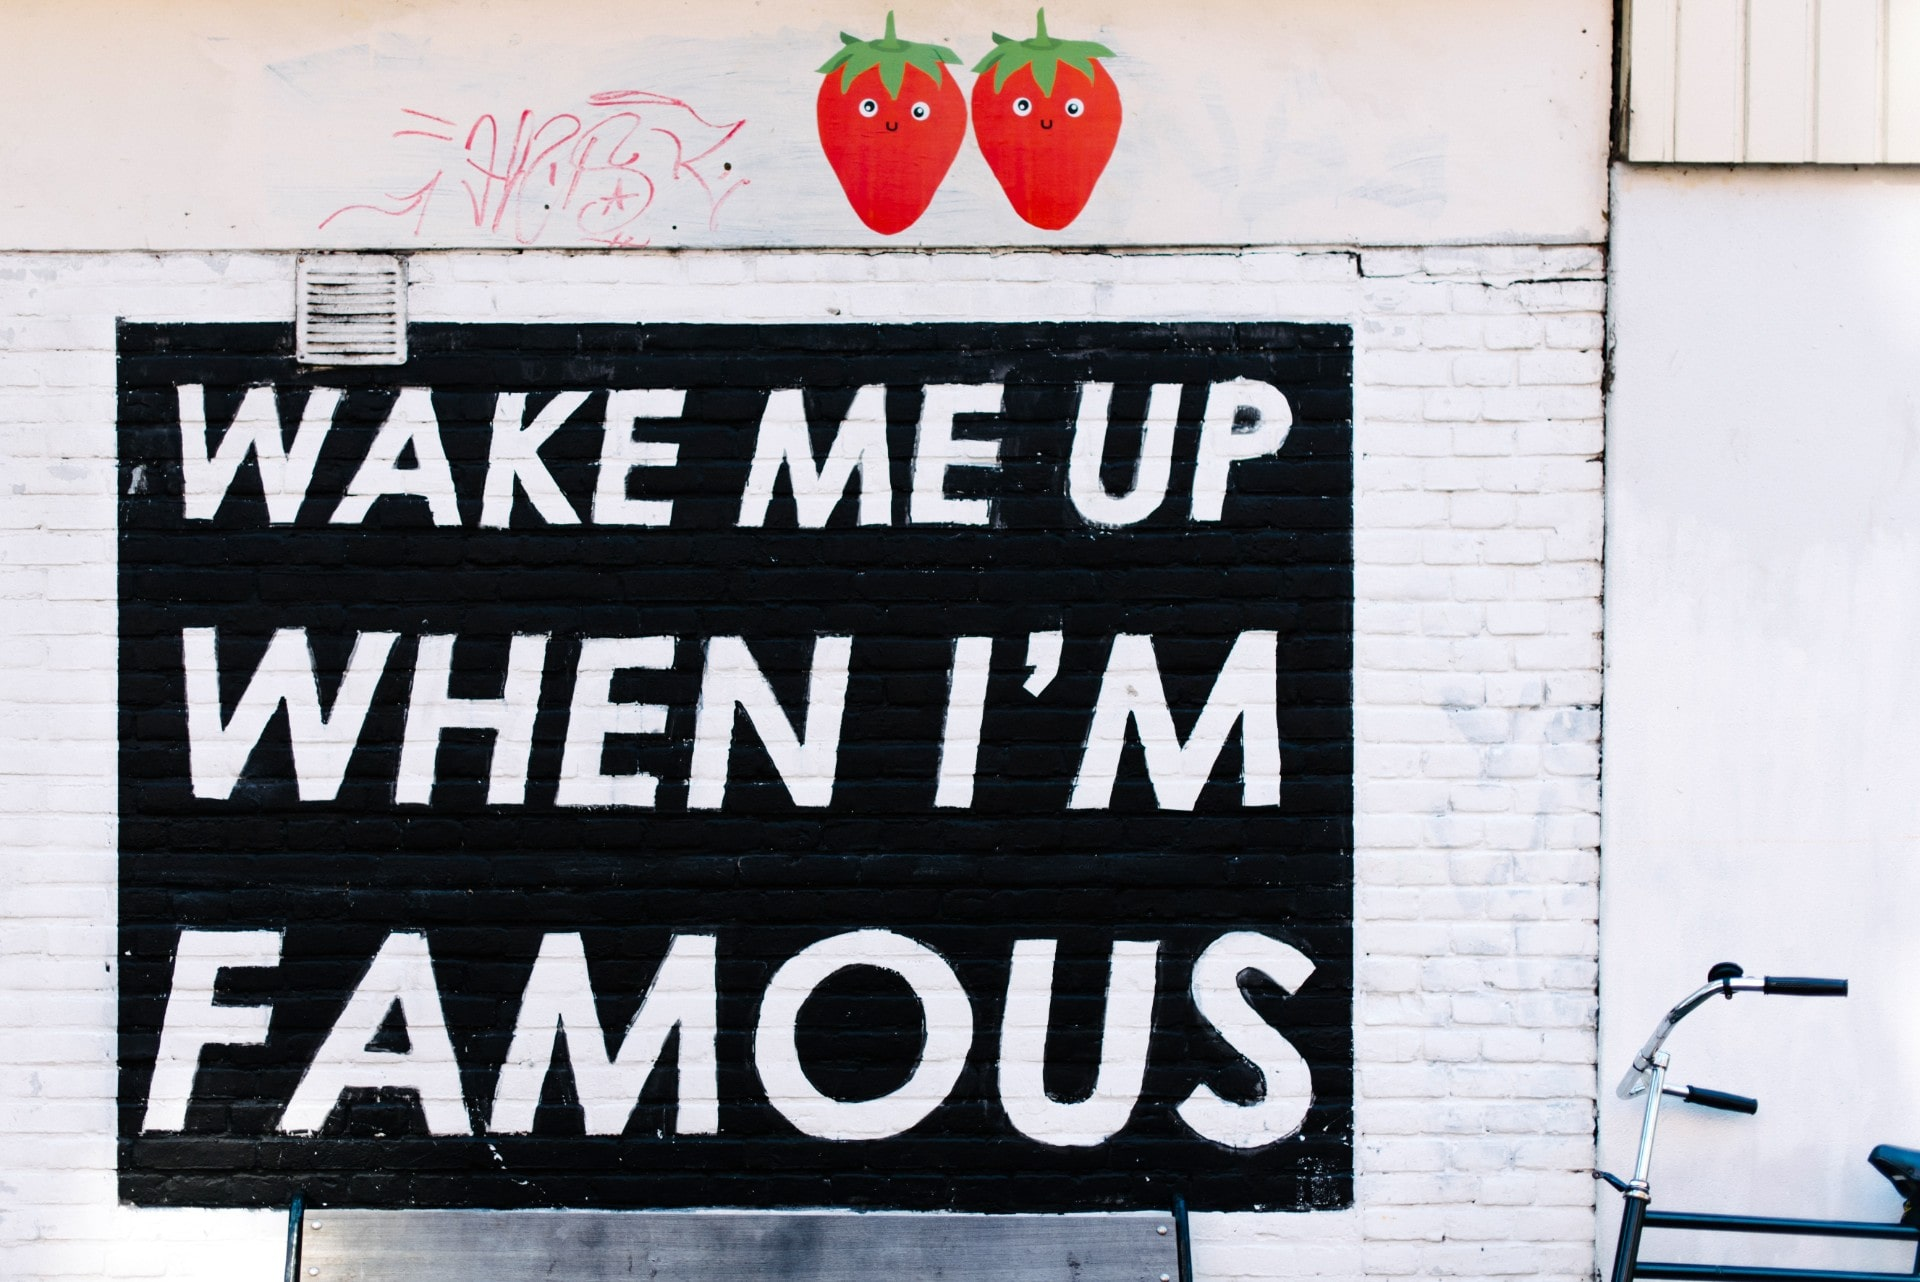 famous-instagrammable-street-art-grafitti-that-says-wake-me-up-when-im-famous-against-white-wall